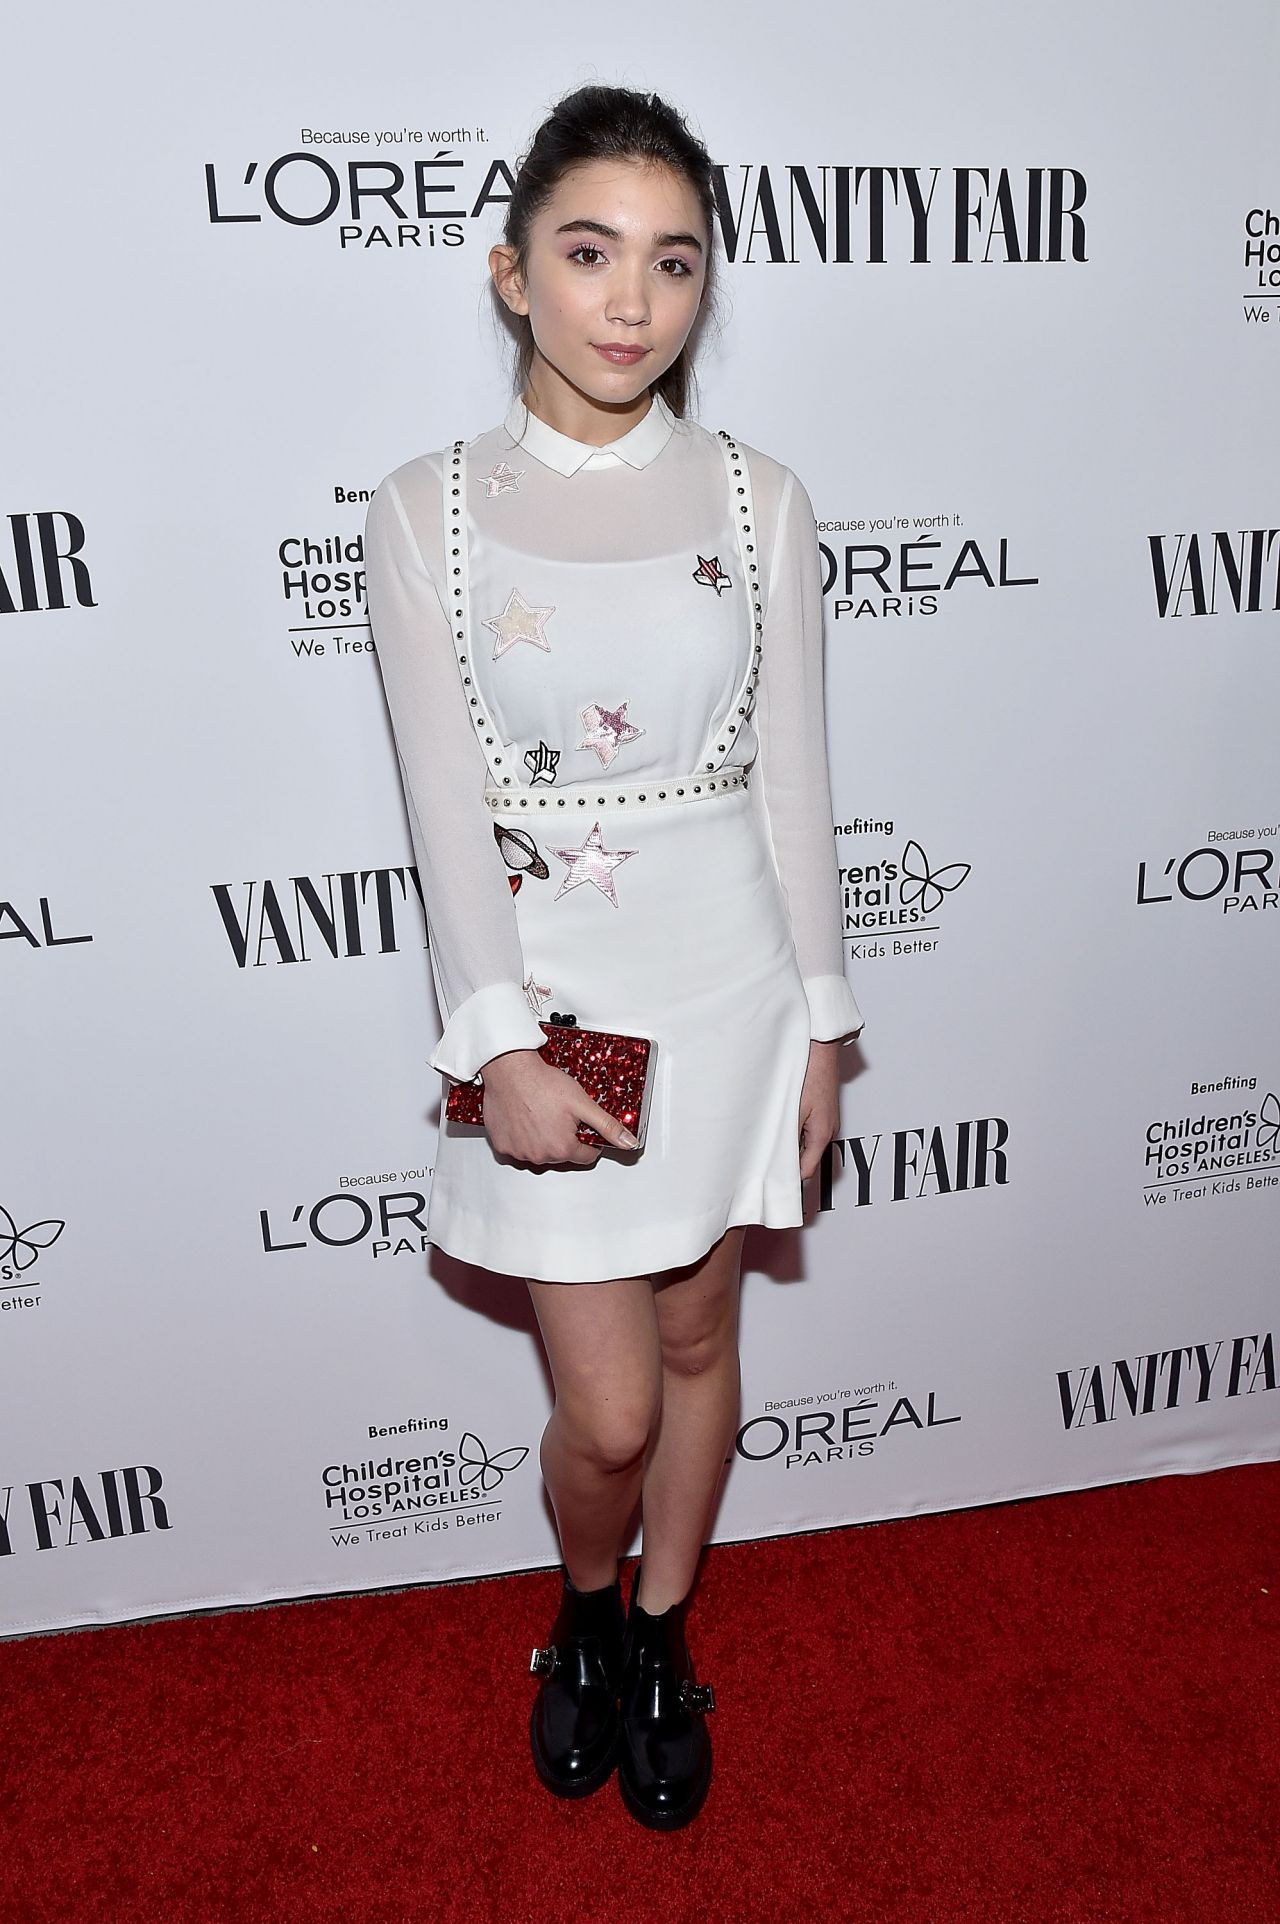 rowan-blanchard-vanity-fair-l-oreal-paris-hailee-steinfeld-dj-night-in-west-hollywood-2-26-2016-1